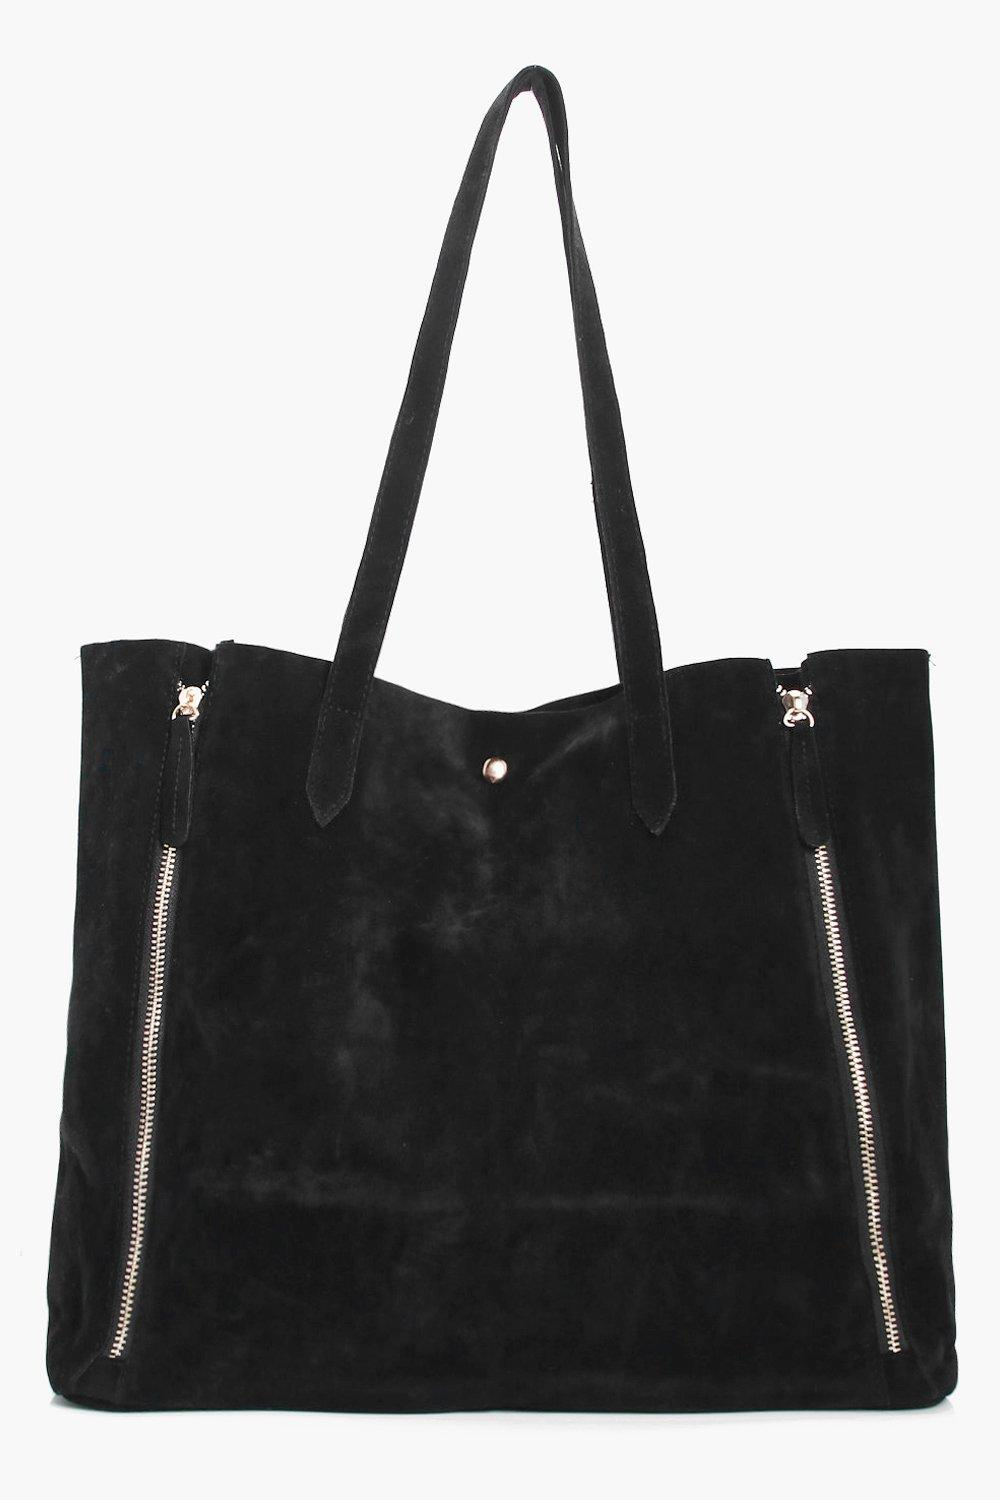 Mock Zip Suedette Shopper Bag - black - Laura Mock